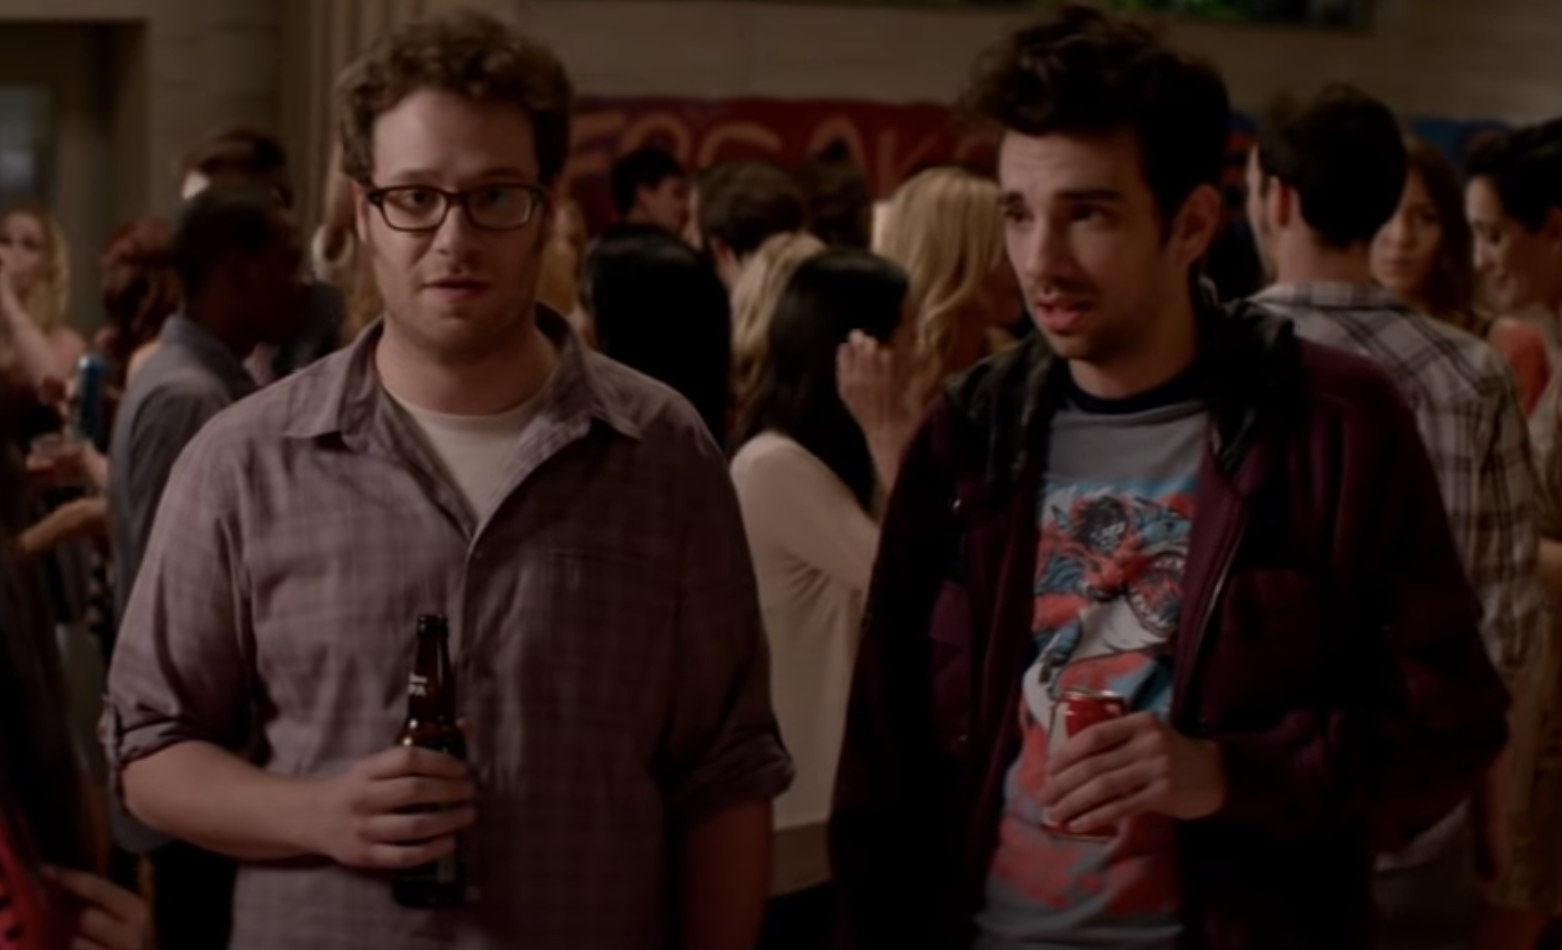 Seth Rogen and Jay Baruchel at a party in This is the end